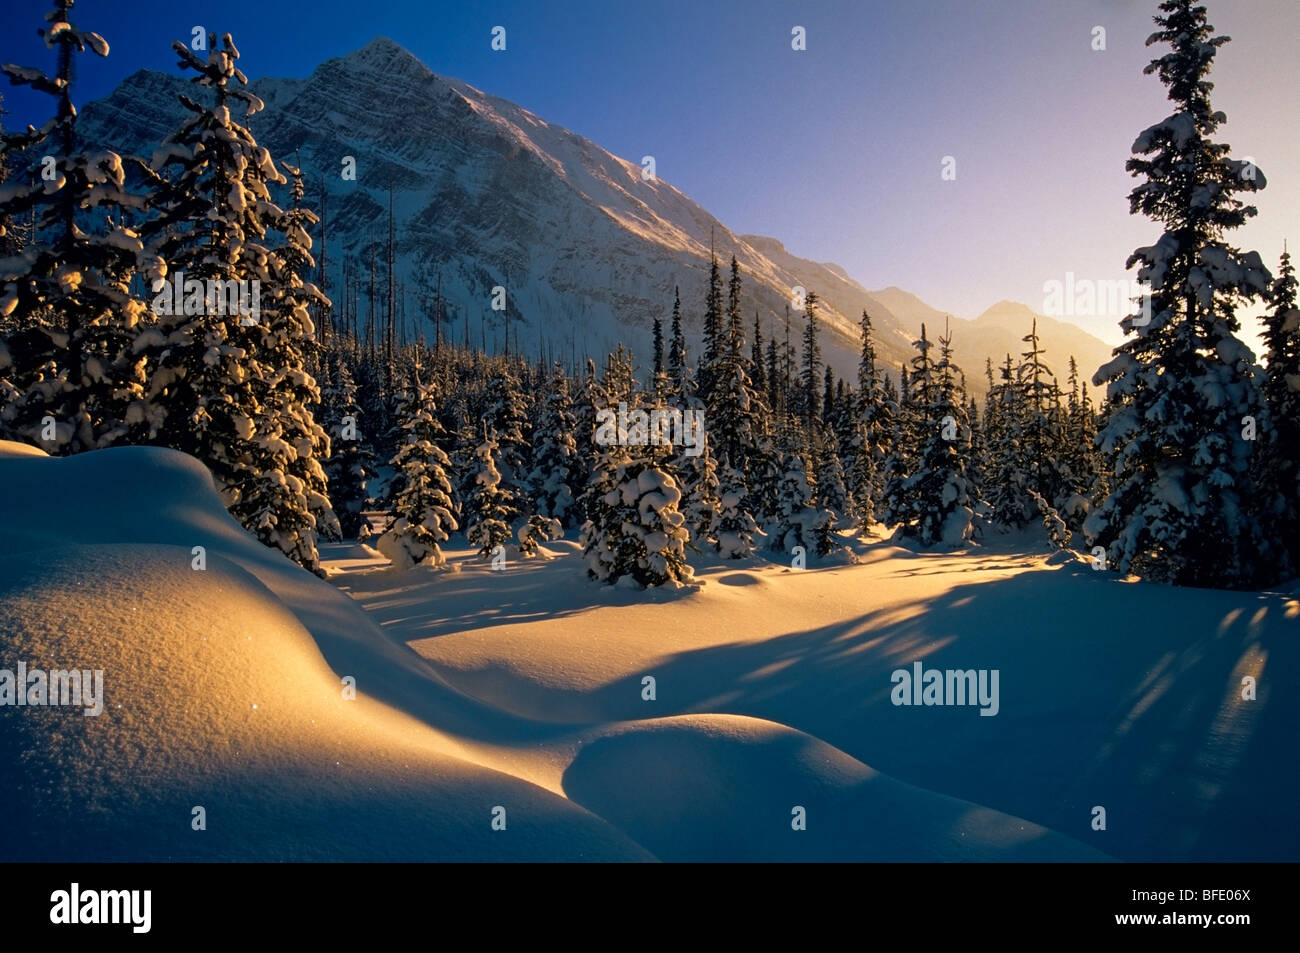 Sunset over winter landscape, at Boom Lake, Banff National Park, Alberta, Canada - Stock Image